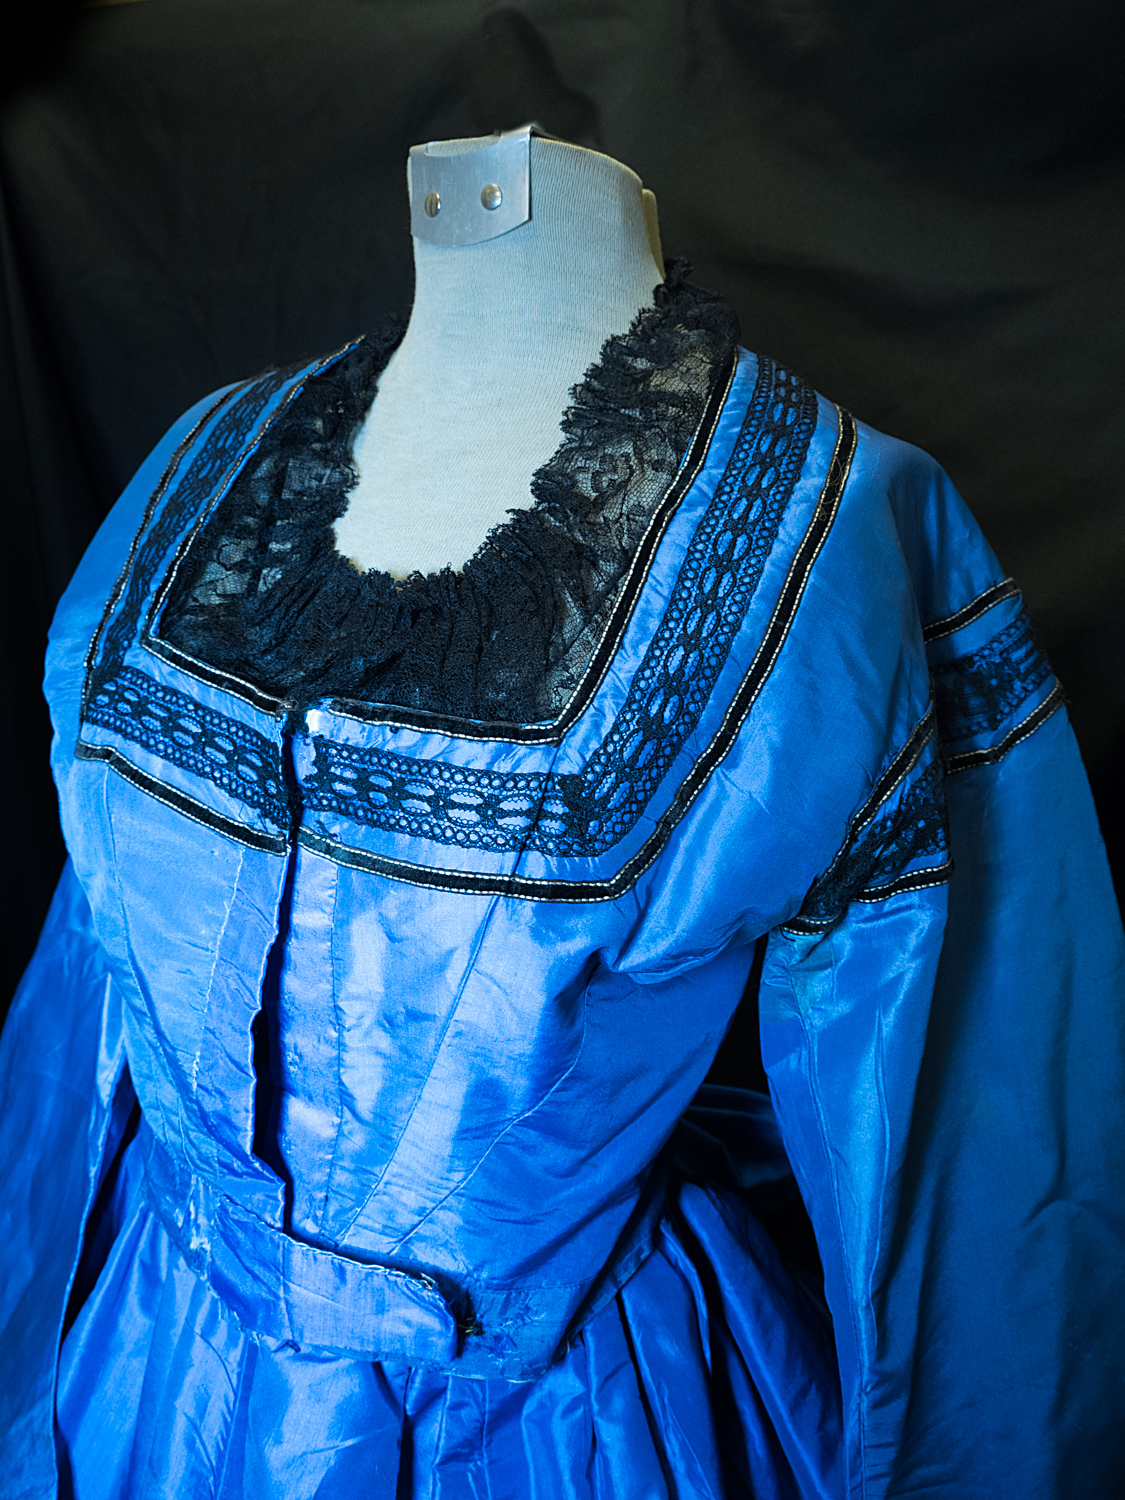 Dinner dress circa 1863. Silk taffeta aniline. Blue trimmed with black laces and black velvet ribbon skirt.